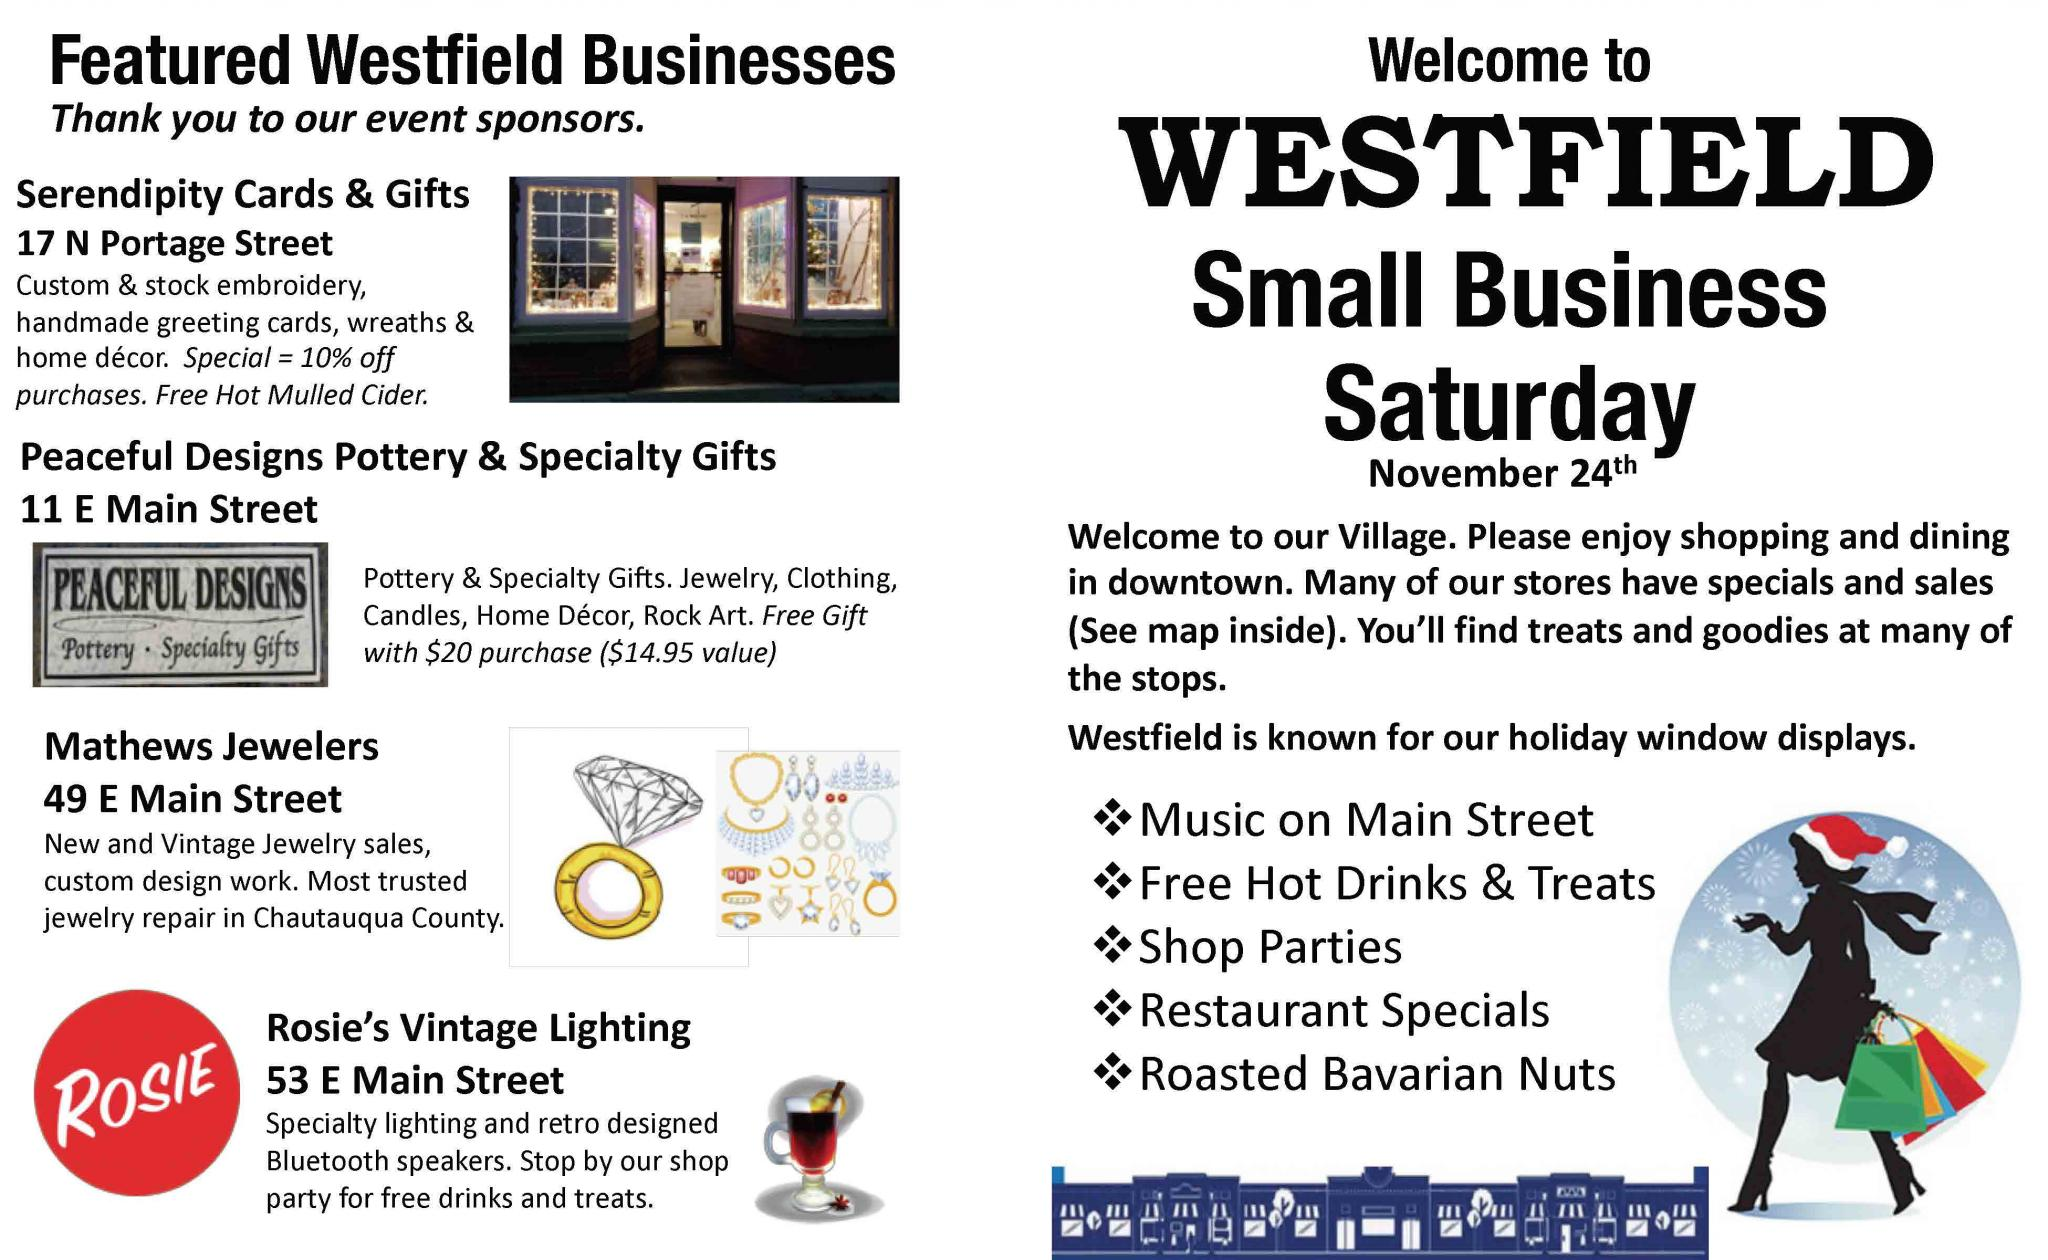 Small Business Saturday in the Village of Westfield